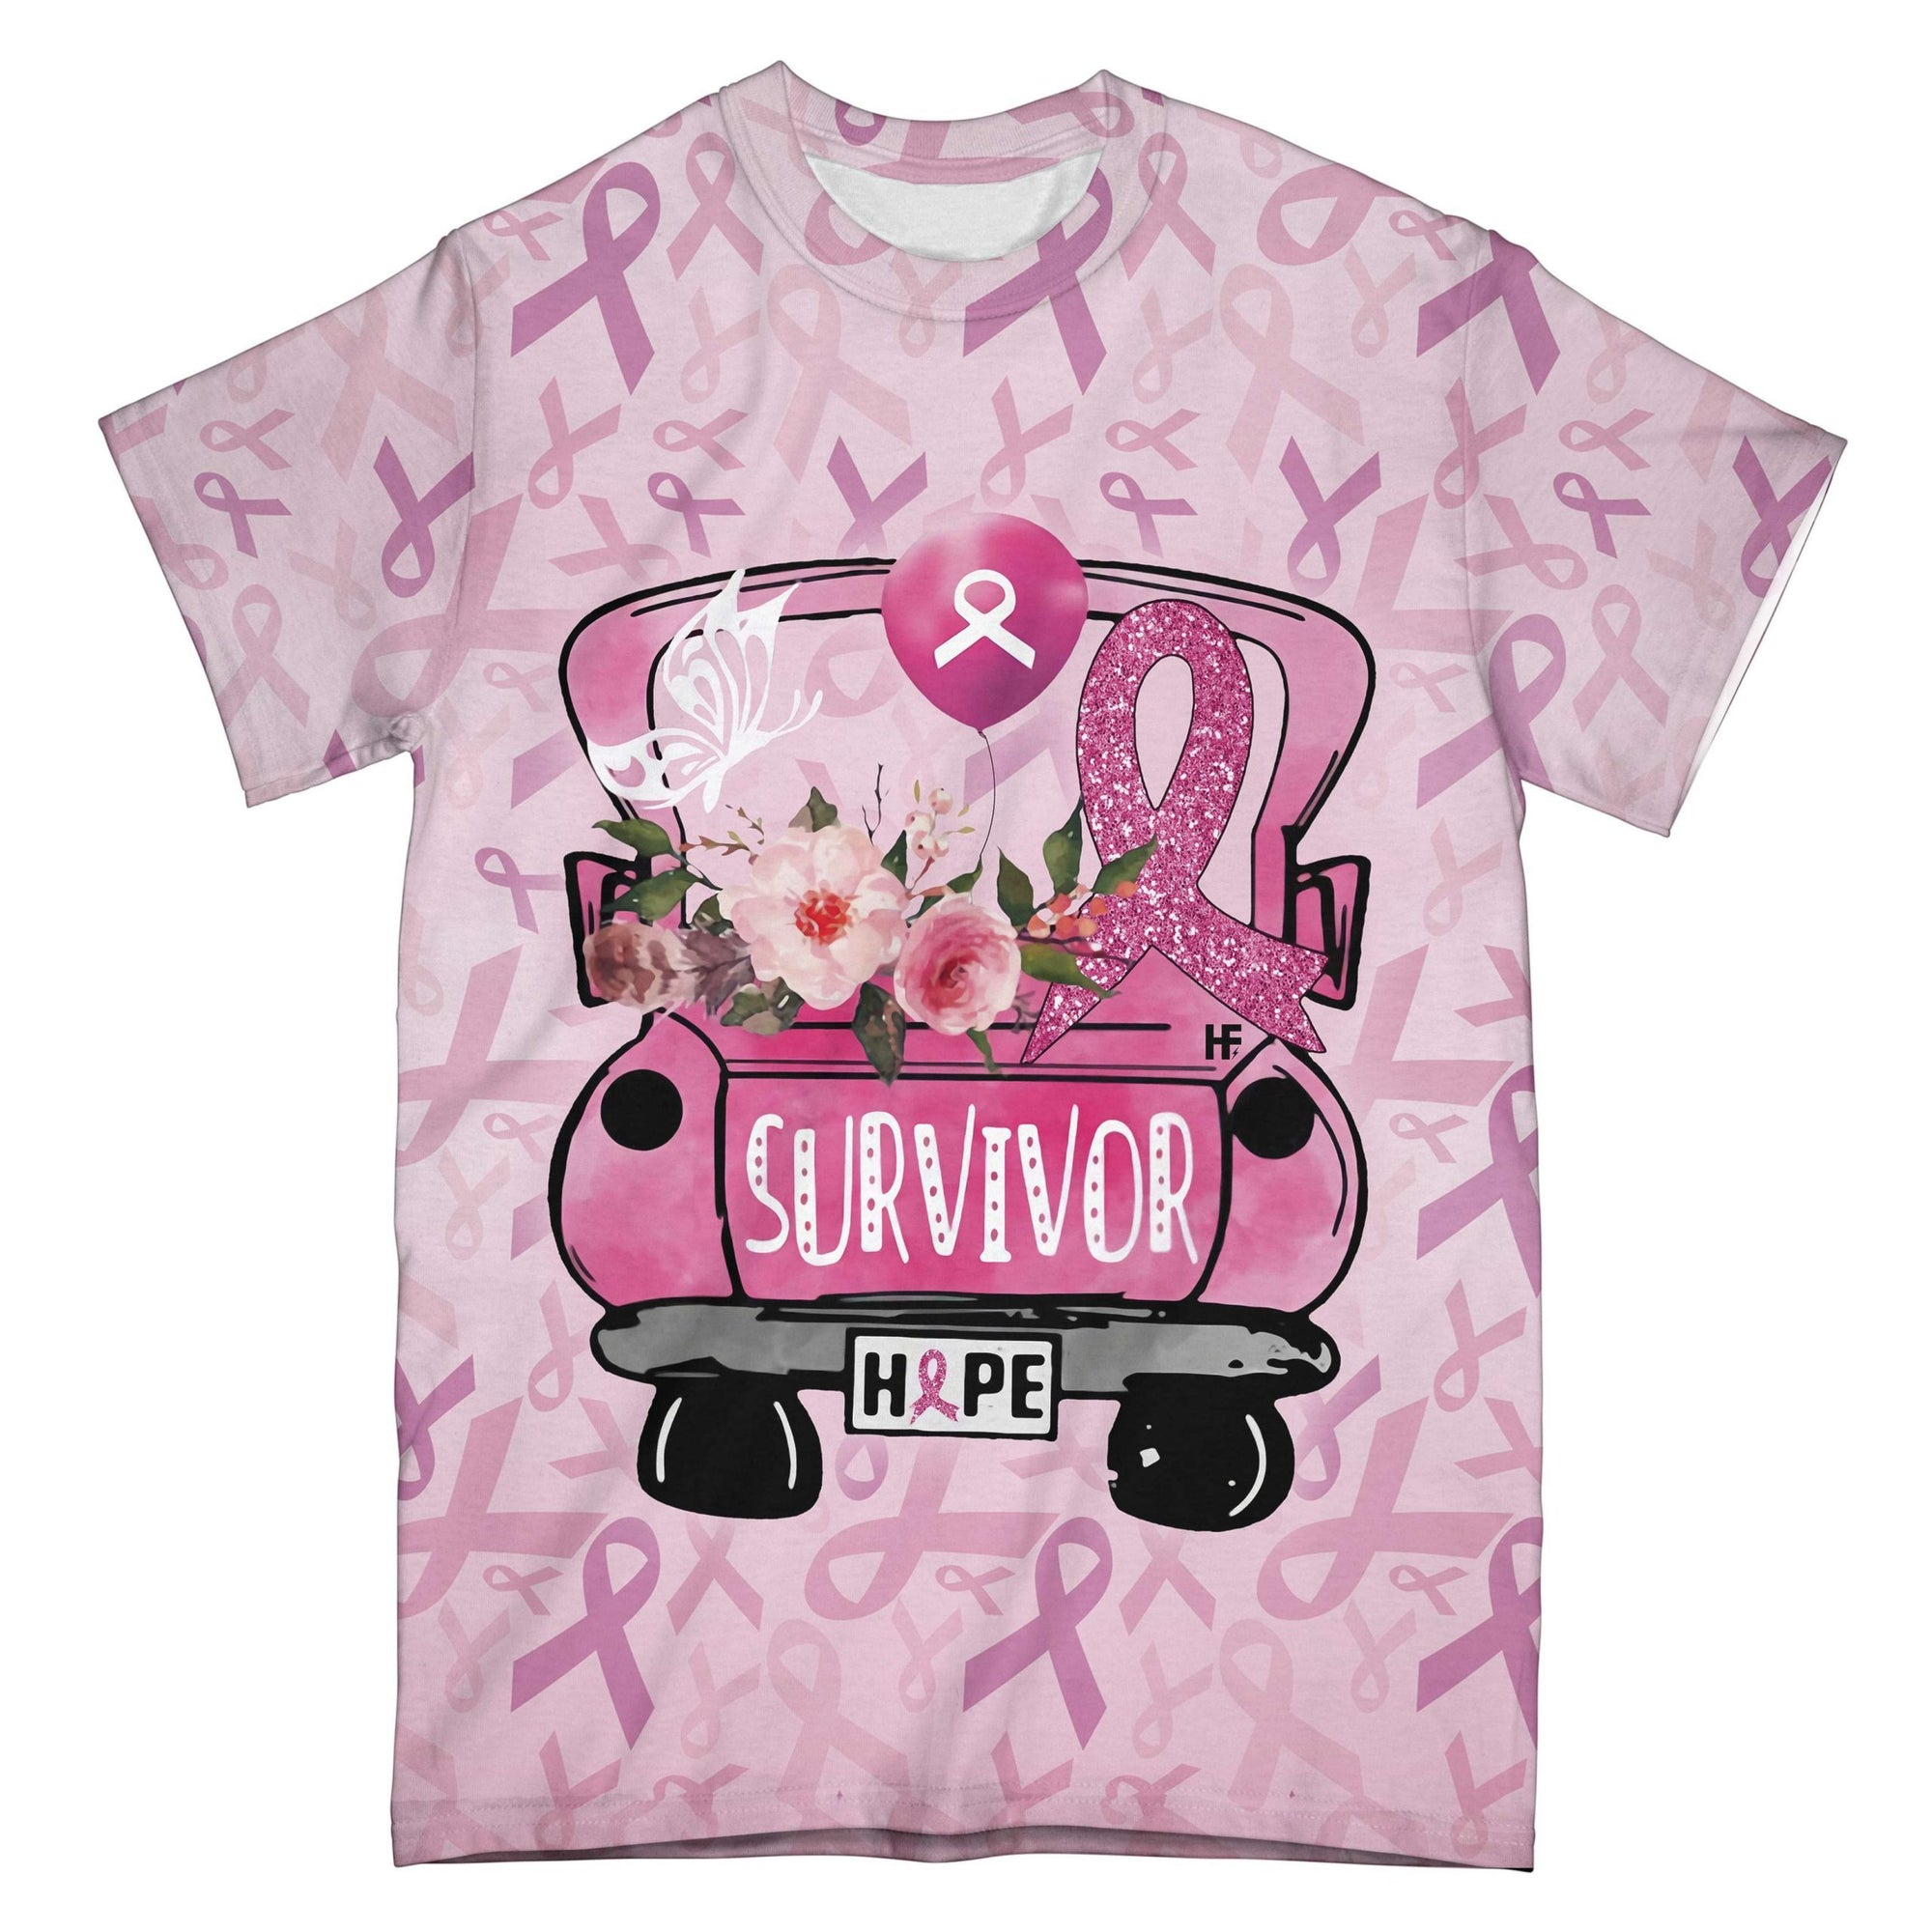 Breast Cancer Survivor EZ08 1908 All Over T-shirt